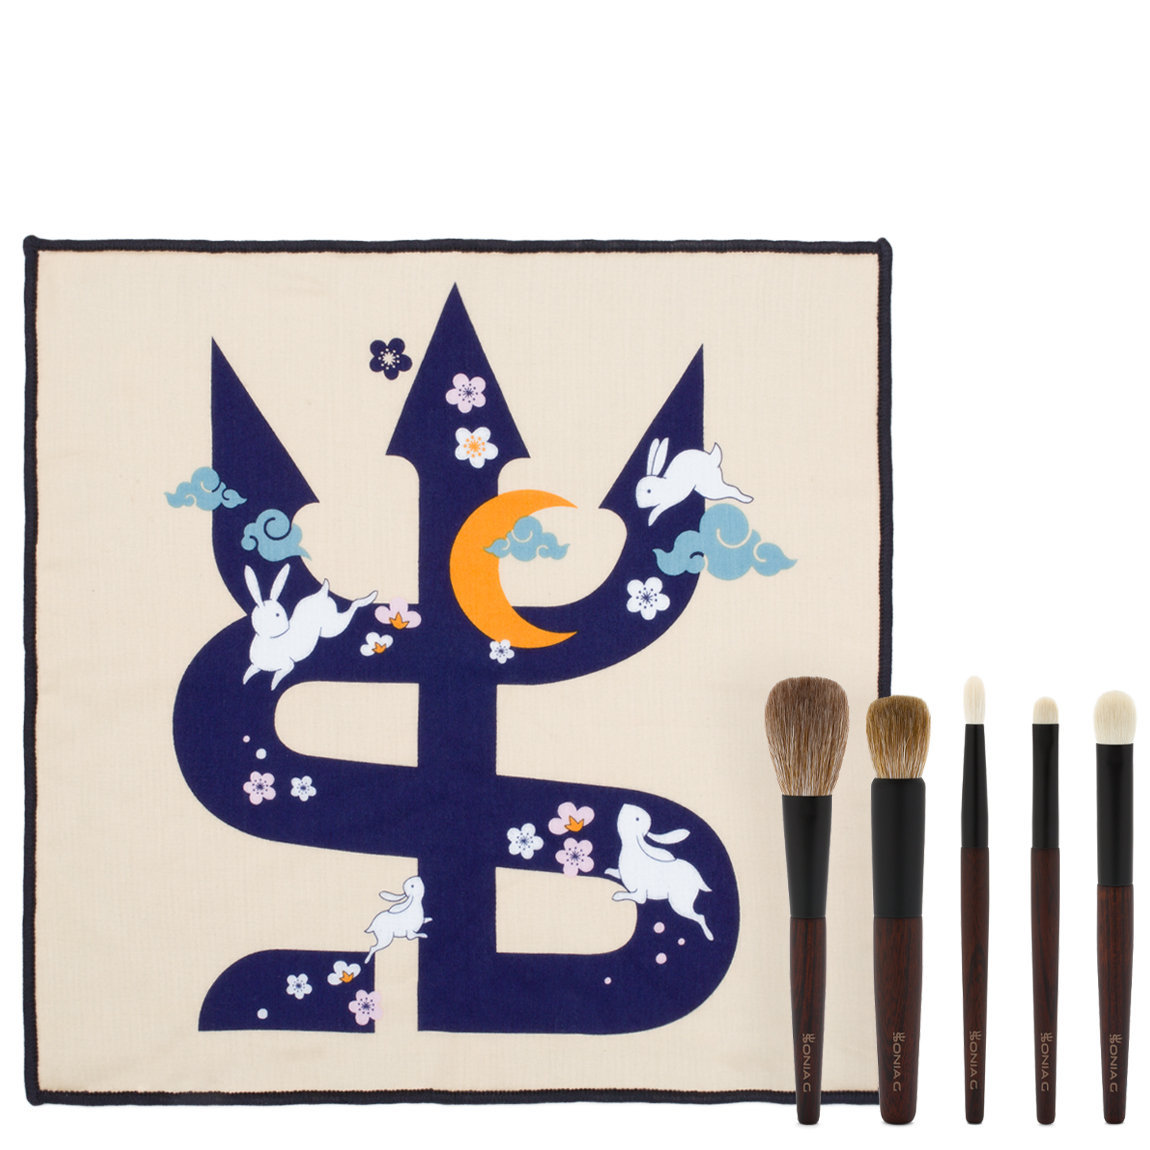 Sonia G. Keyaki Brush Set + To the Moon and Back Towel Bundle alternative view 1 - product swatch.